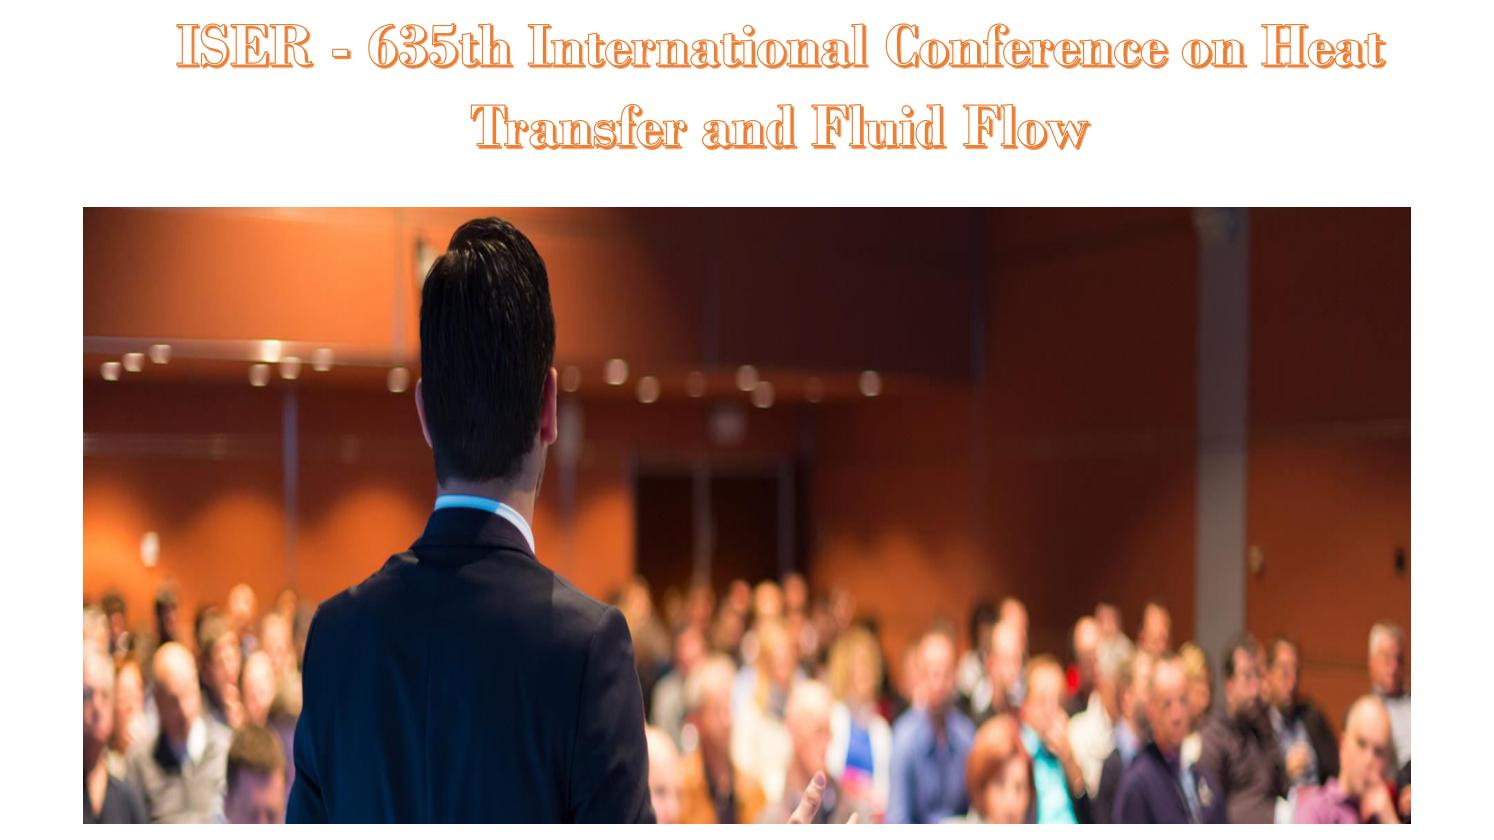 ISER - 635th International Conference on Heat Transfer and Fluid